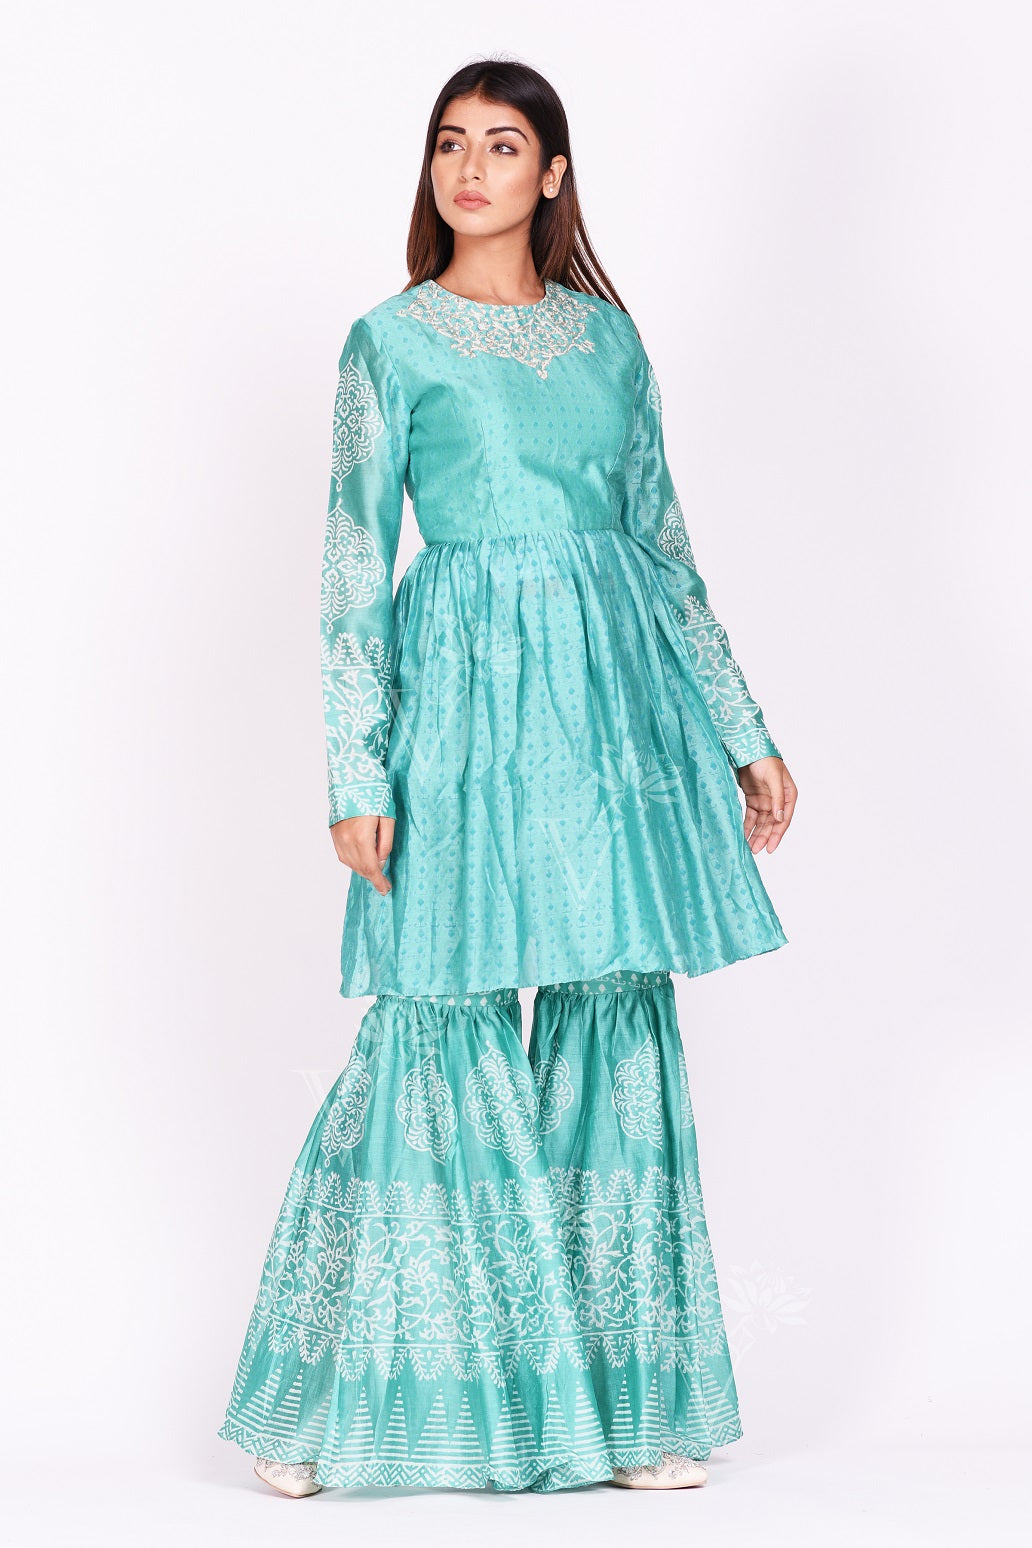 Buy stunning mint green printed silk sharara set online in USA. Make a stunning fashion statement at weddings and special occasions with an exquisite collection of designer Anarkali suits, designer lehengas, Indian designer dresses from Pure Elegance Indian fashion store in USA. -side